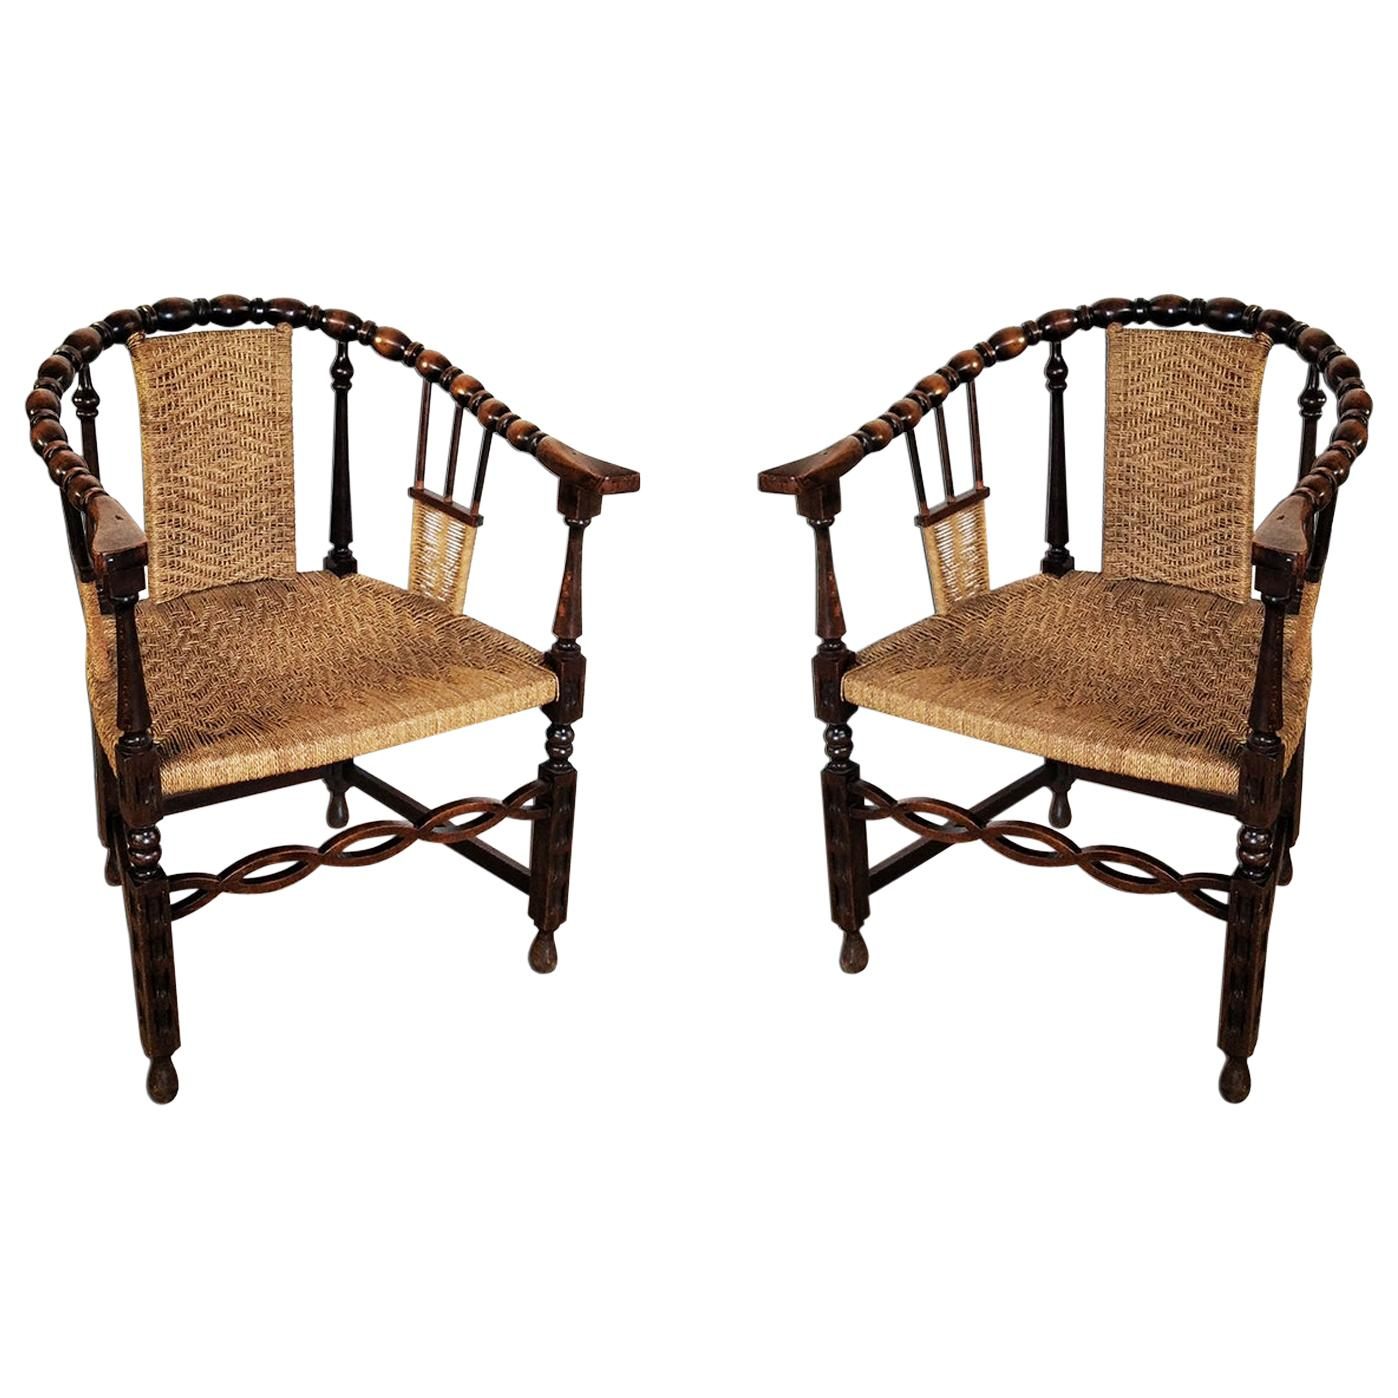 Pair of Antique Armchairs With Turned Wood